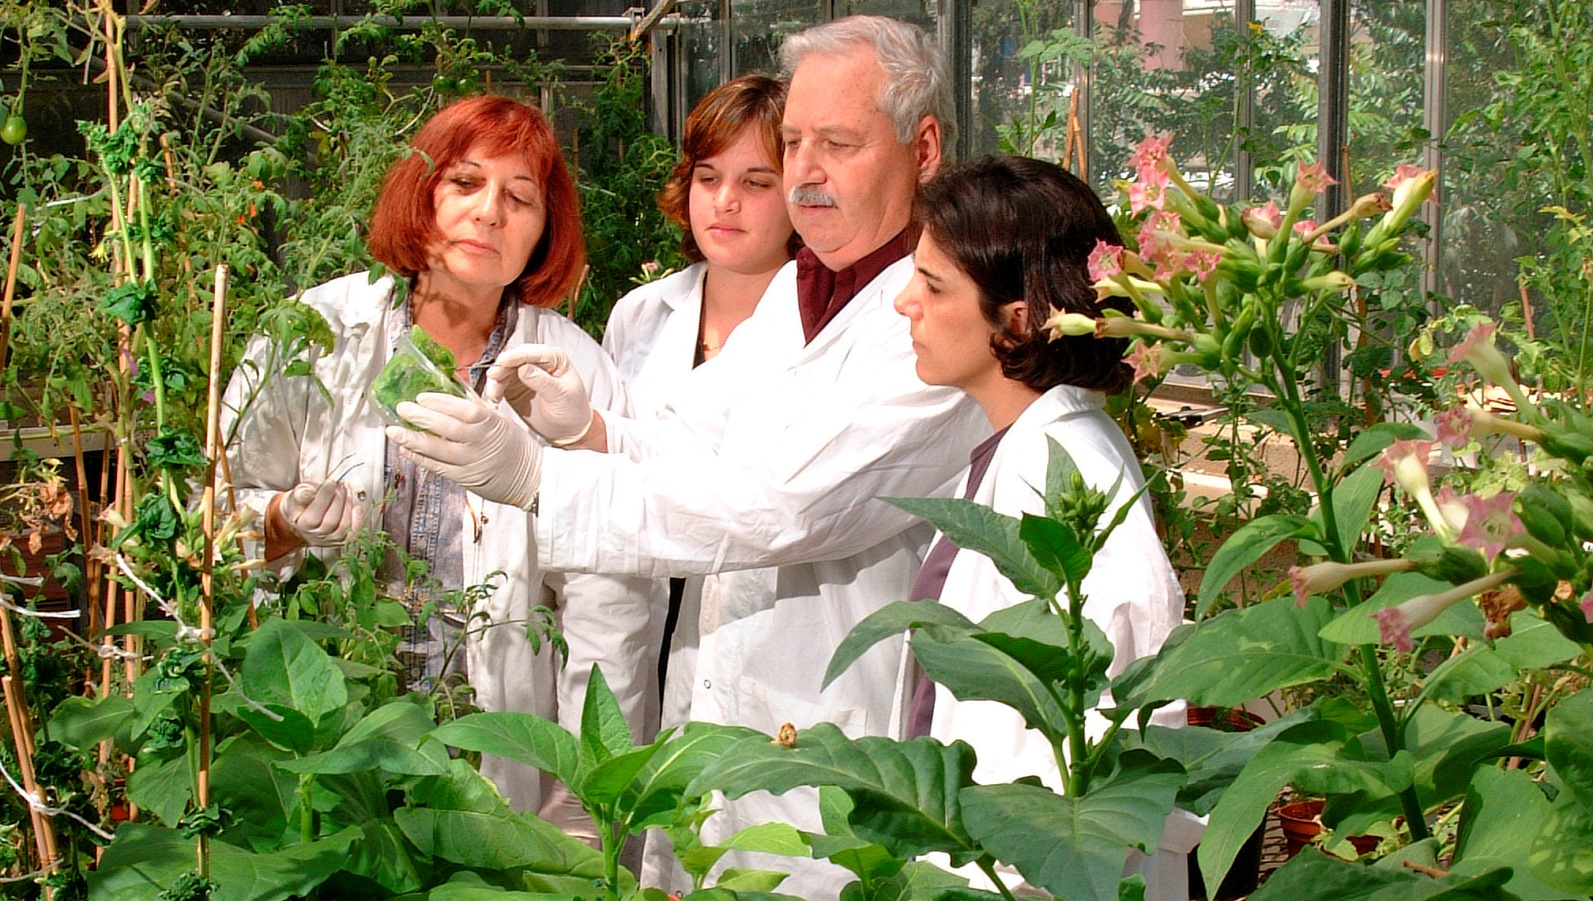 A lucky discovery in the Israeli laboratory of Technion Prof. Emeritus Shimon Gepstein led to a revolutionary advance in growing food crops with higher yields and resistance to drought and other stresses. Photo: courtesy